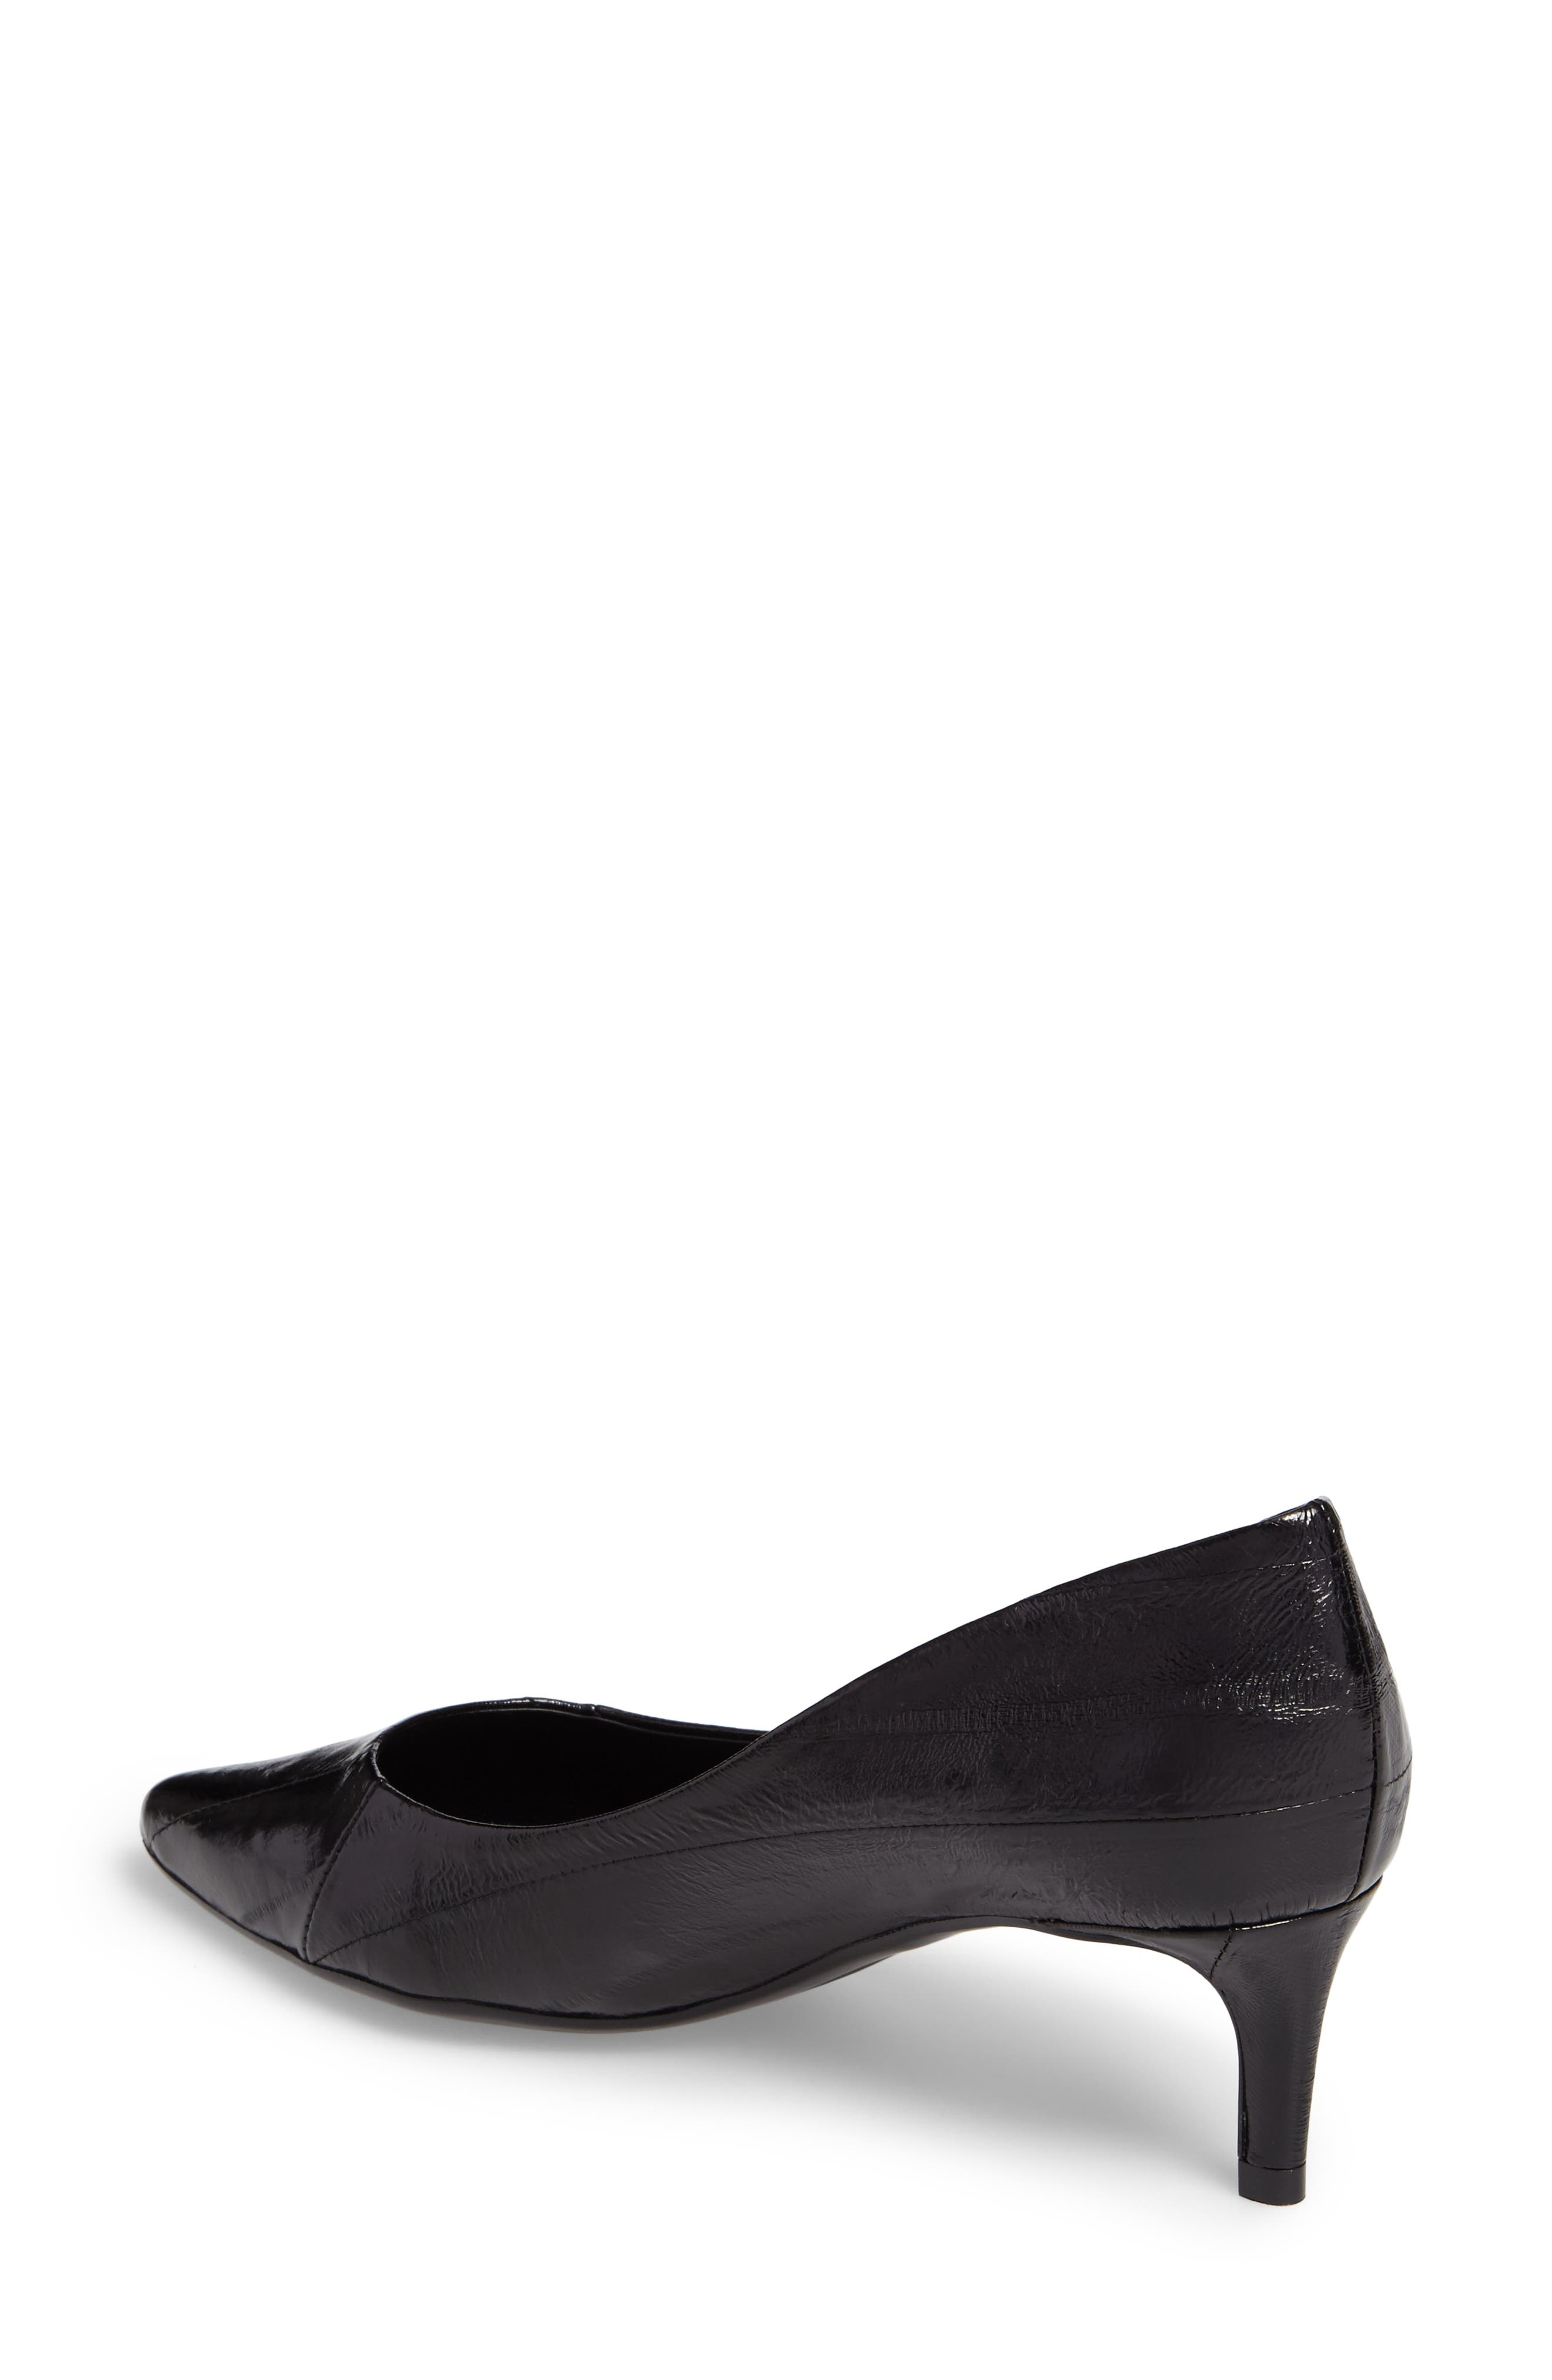 Tommy Pointy Toe Pump,                             Alternate thumbnail 2, color,                             002